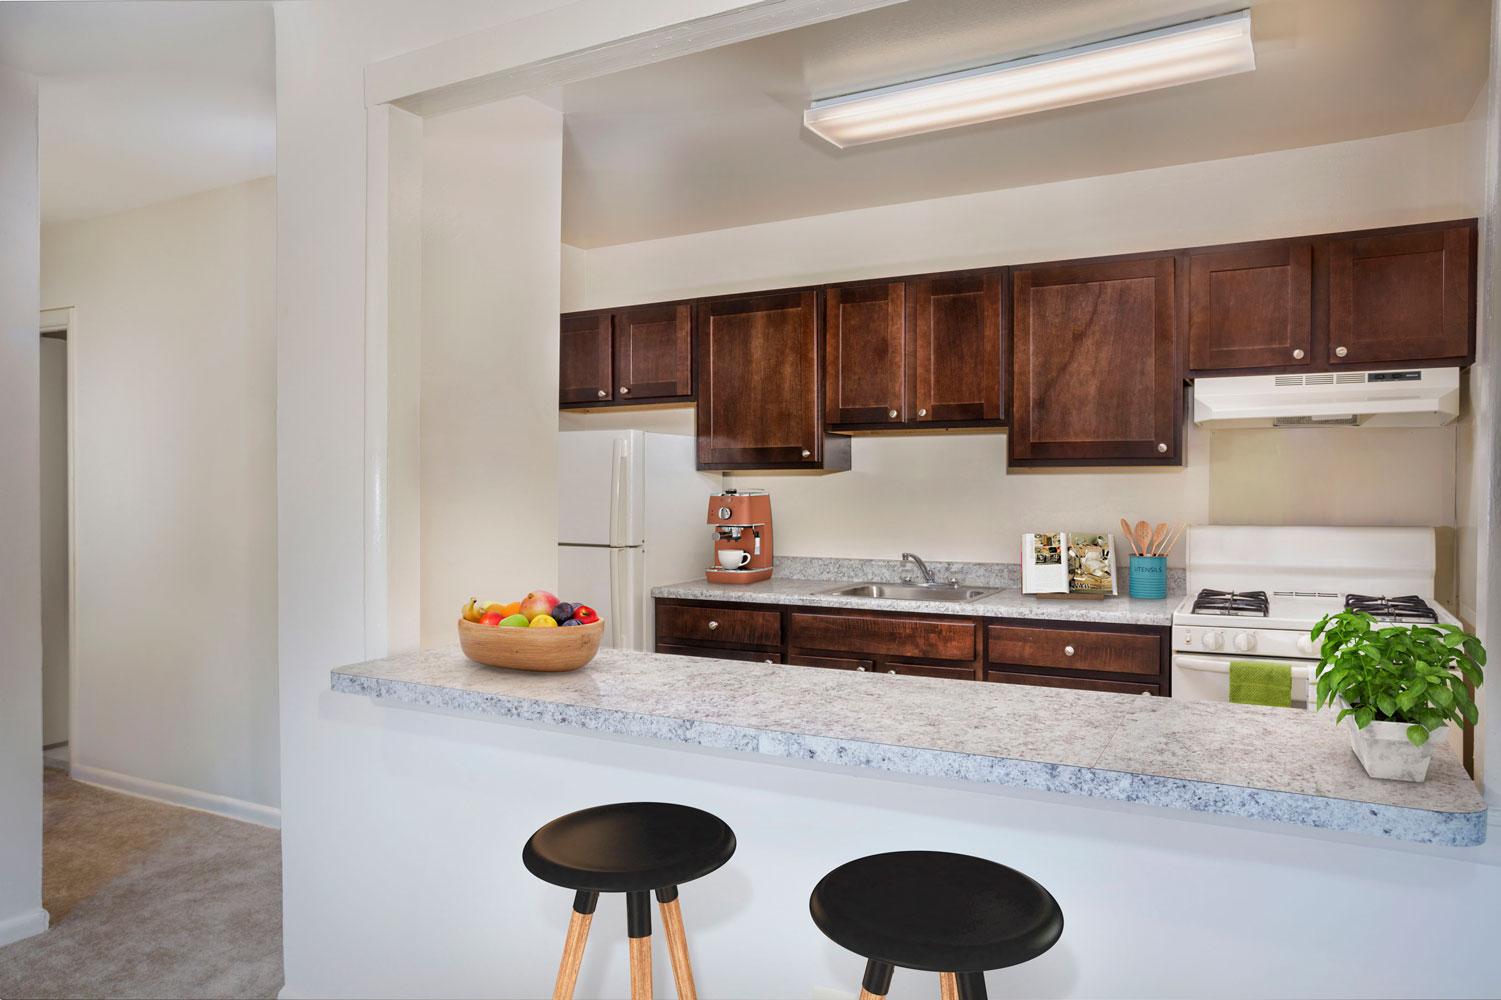 Upgraded kitchen (in select apartments) at Riverside Plaza Apartments in Oxon Hill, MD